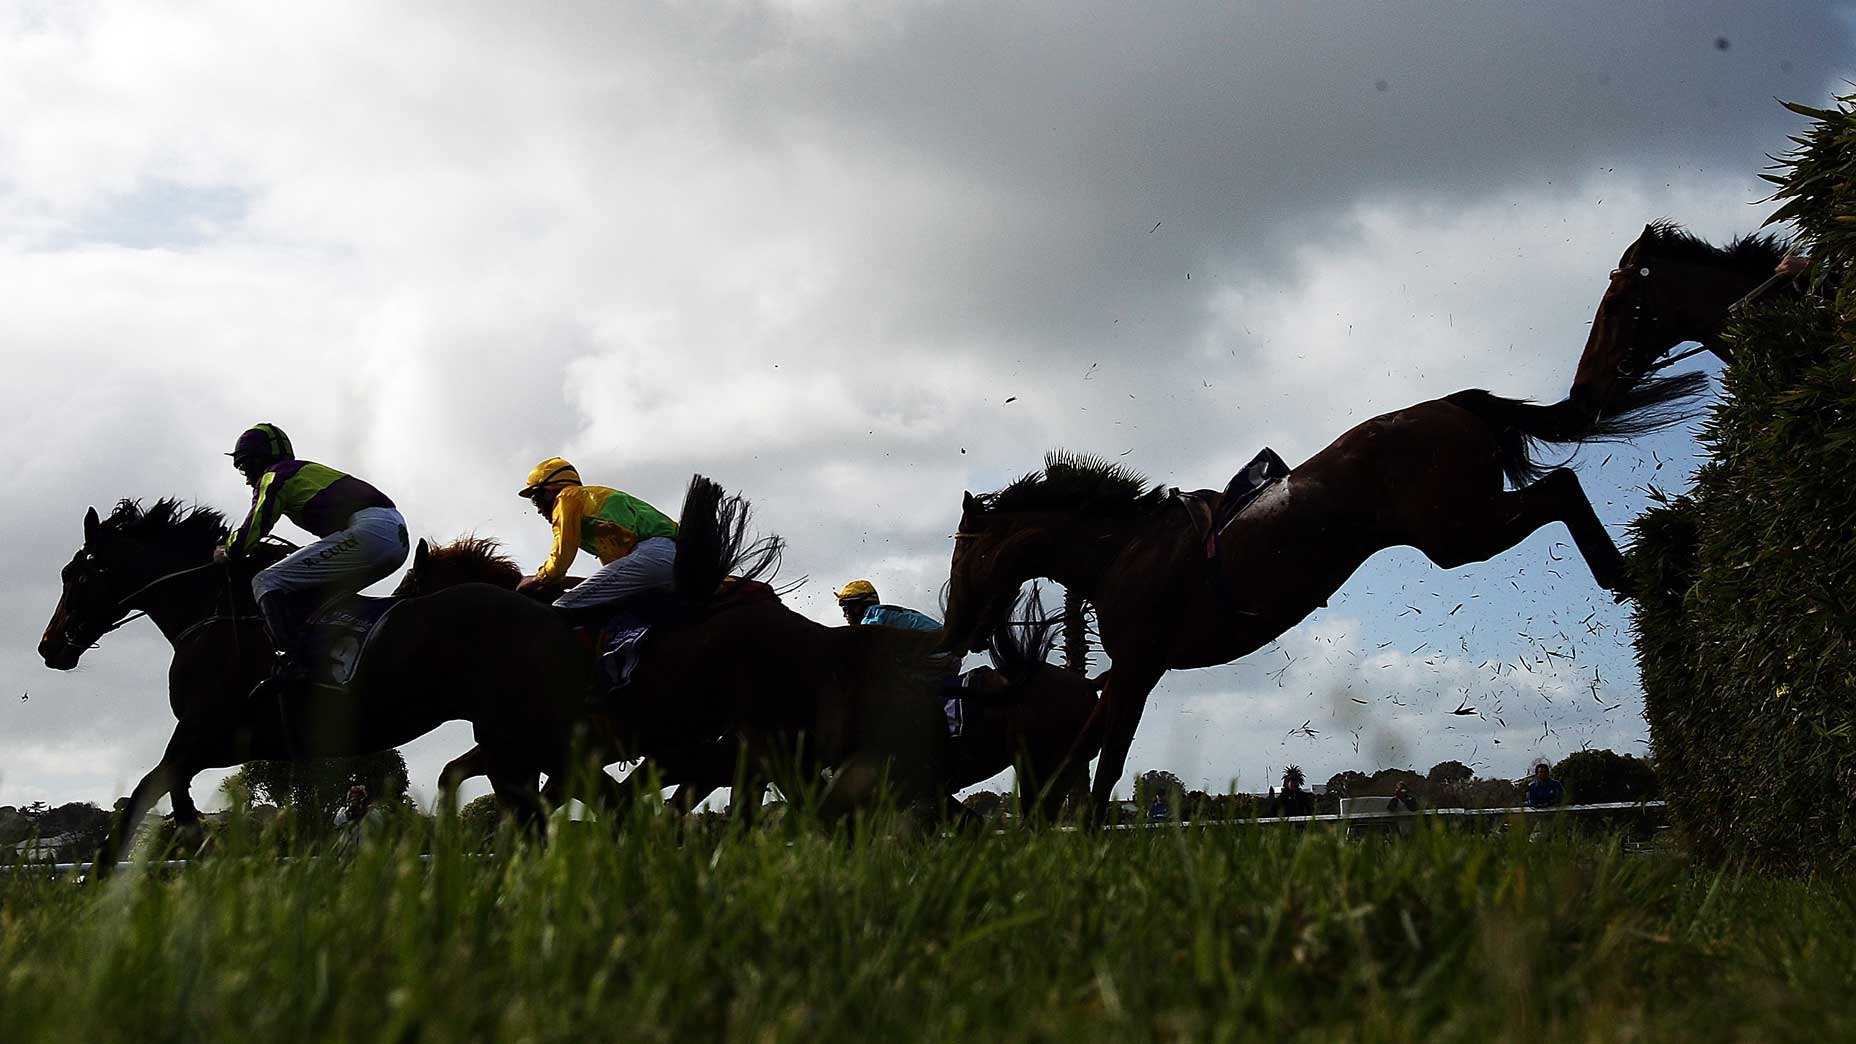 Golfer incredibly chases his errant shot – into a horse race